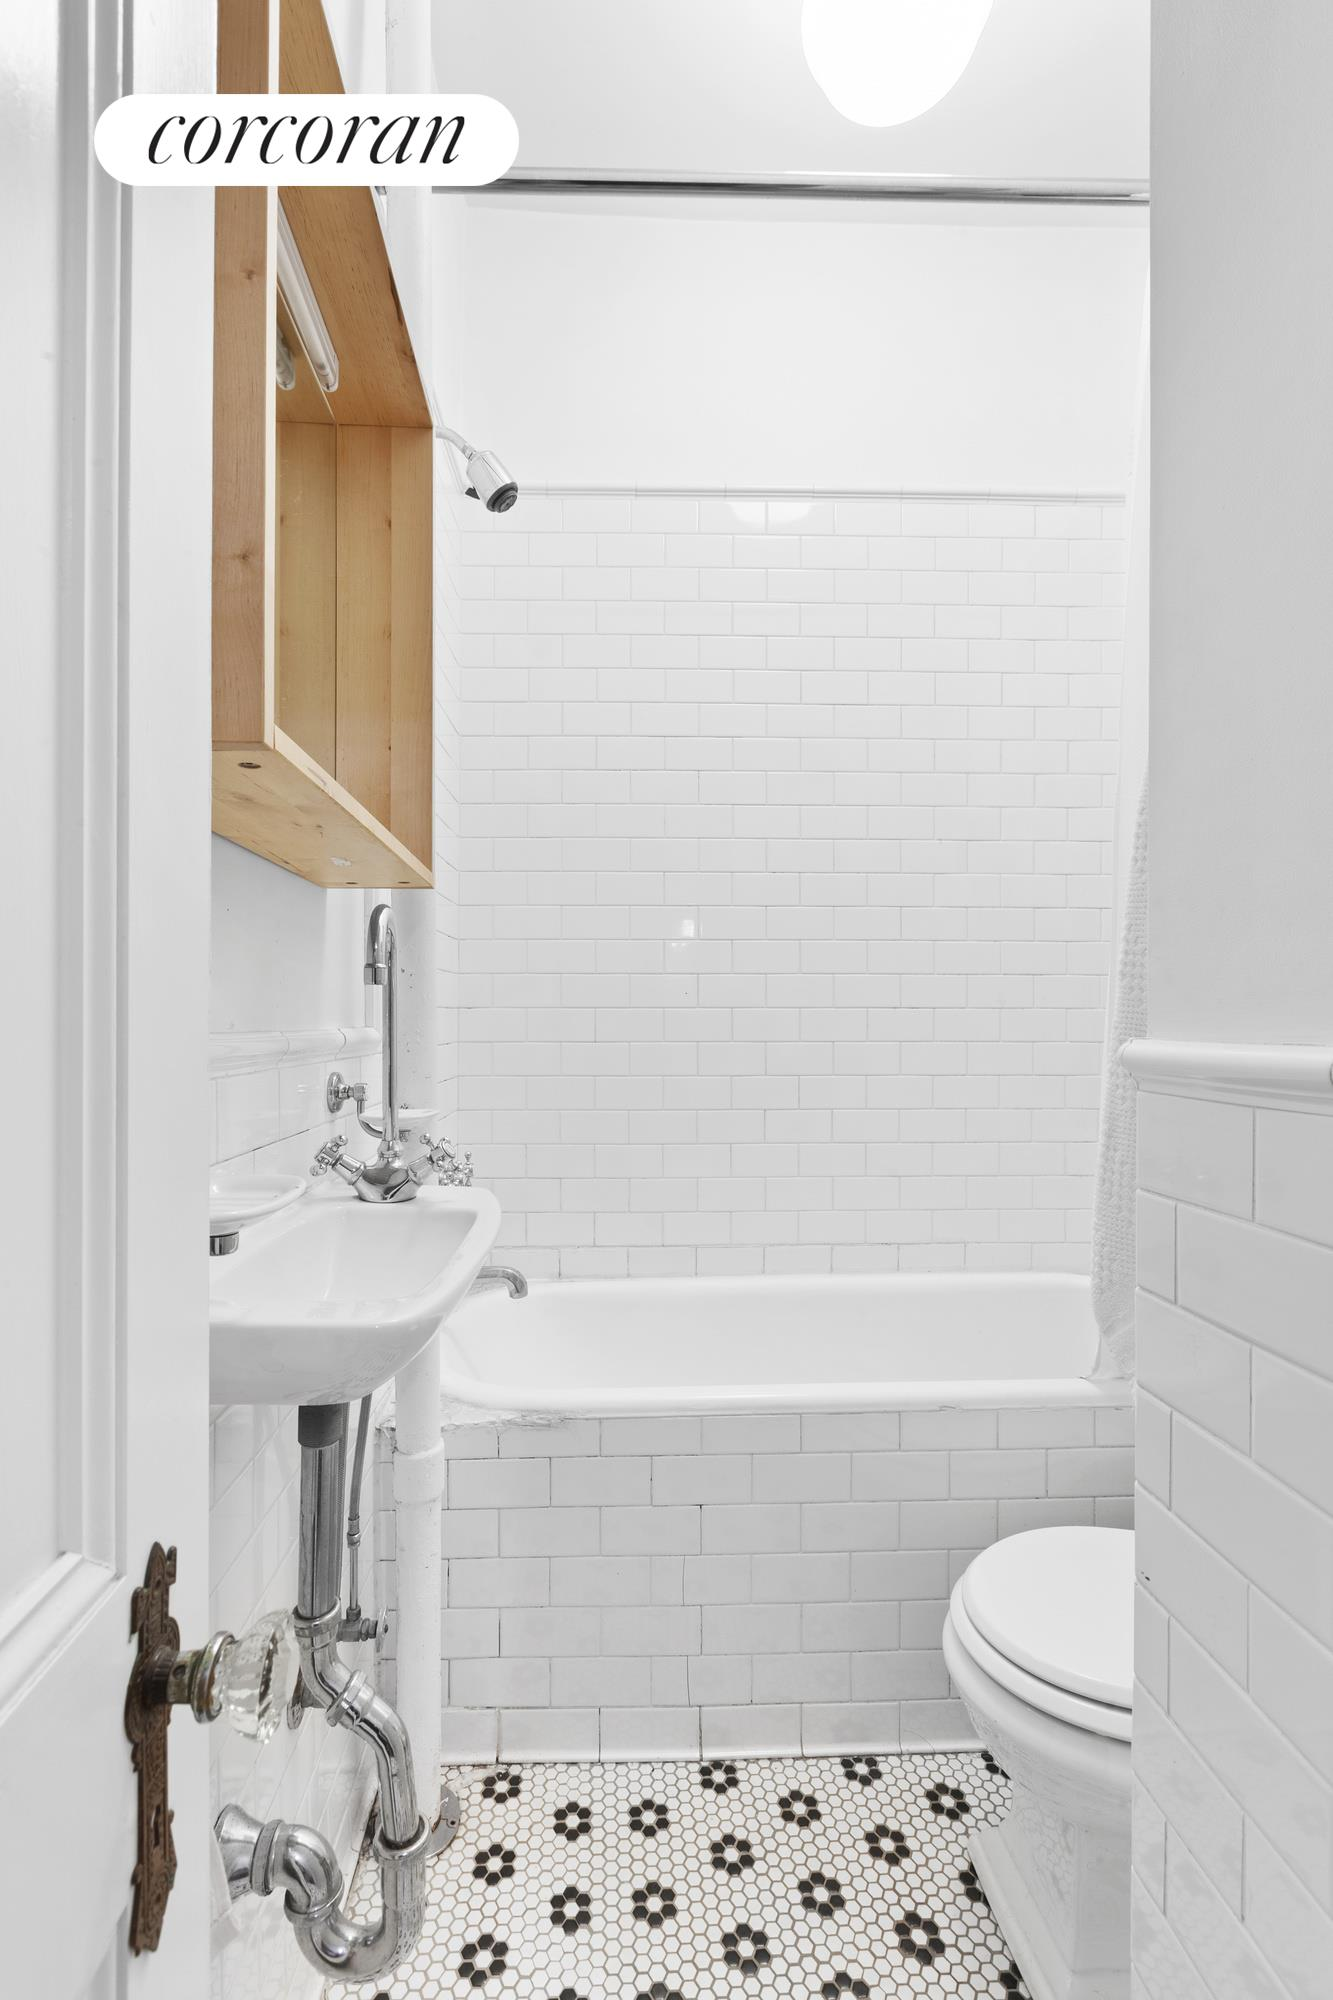 Apartment for sale at 135 Perry Street, Apt 3